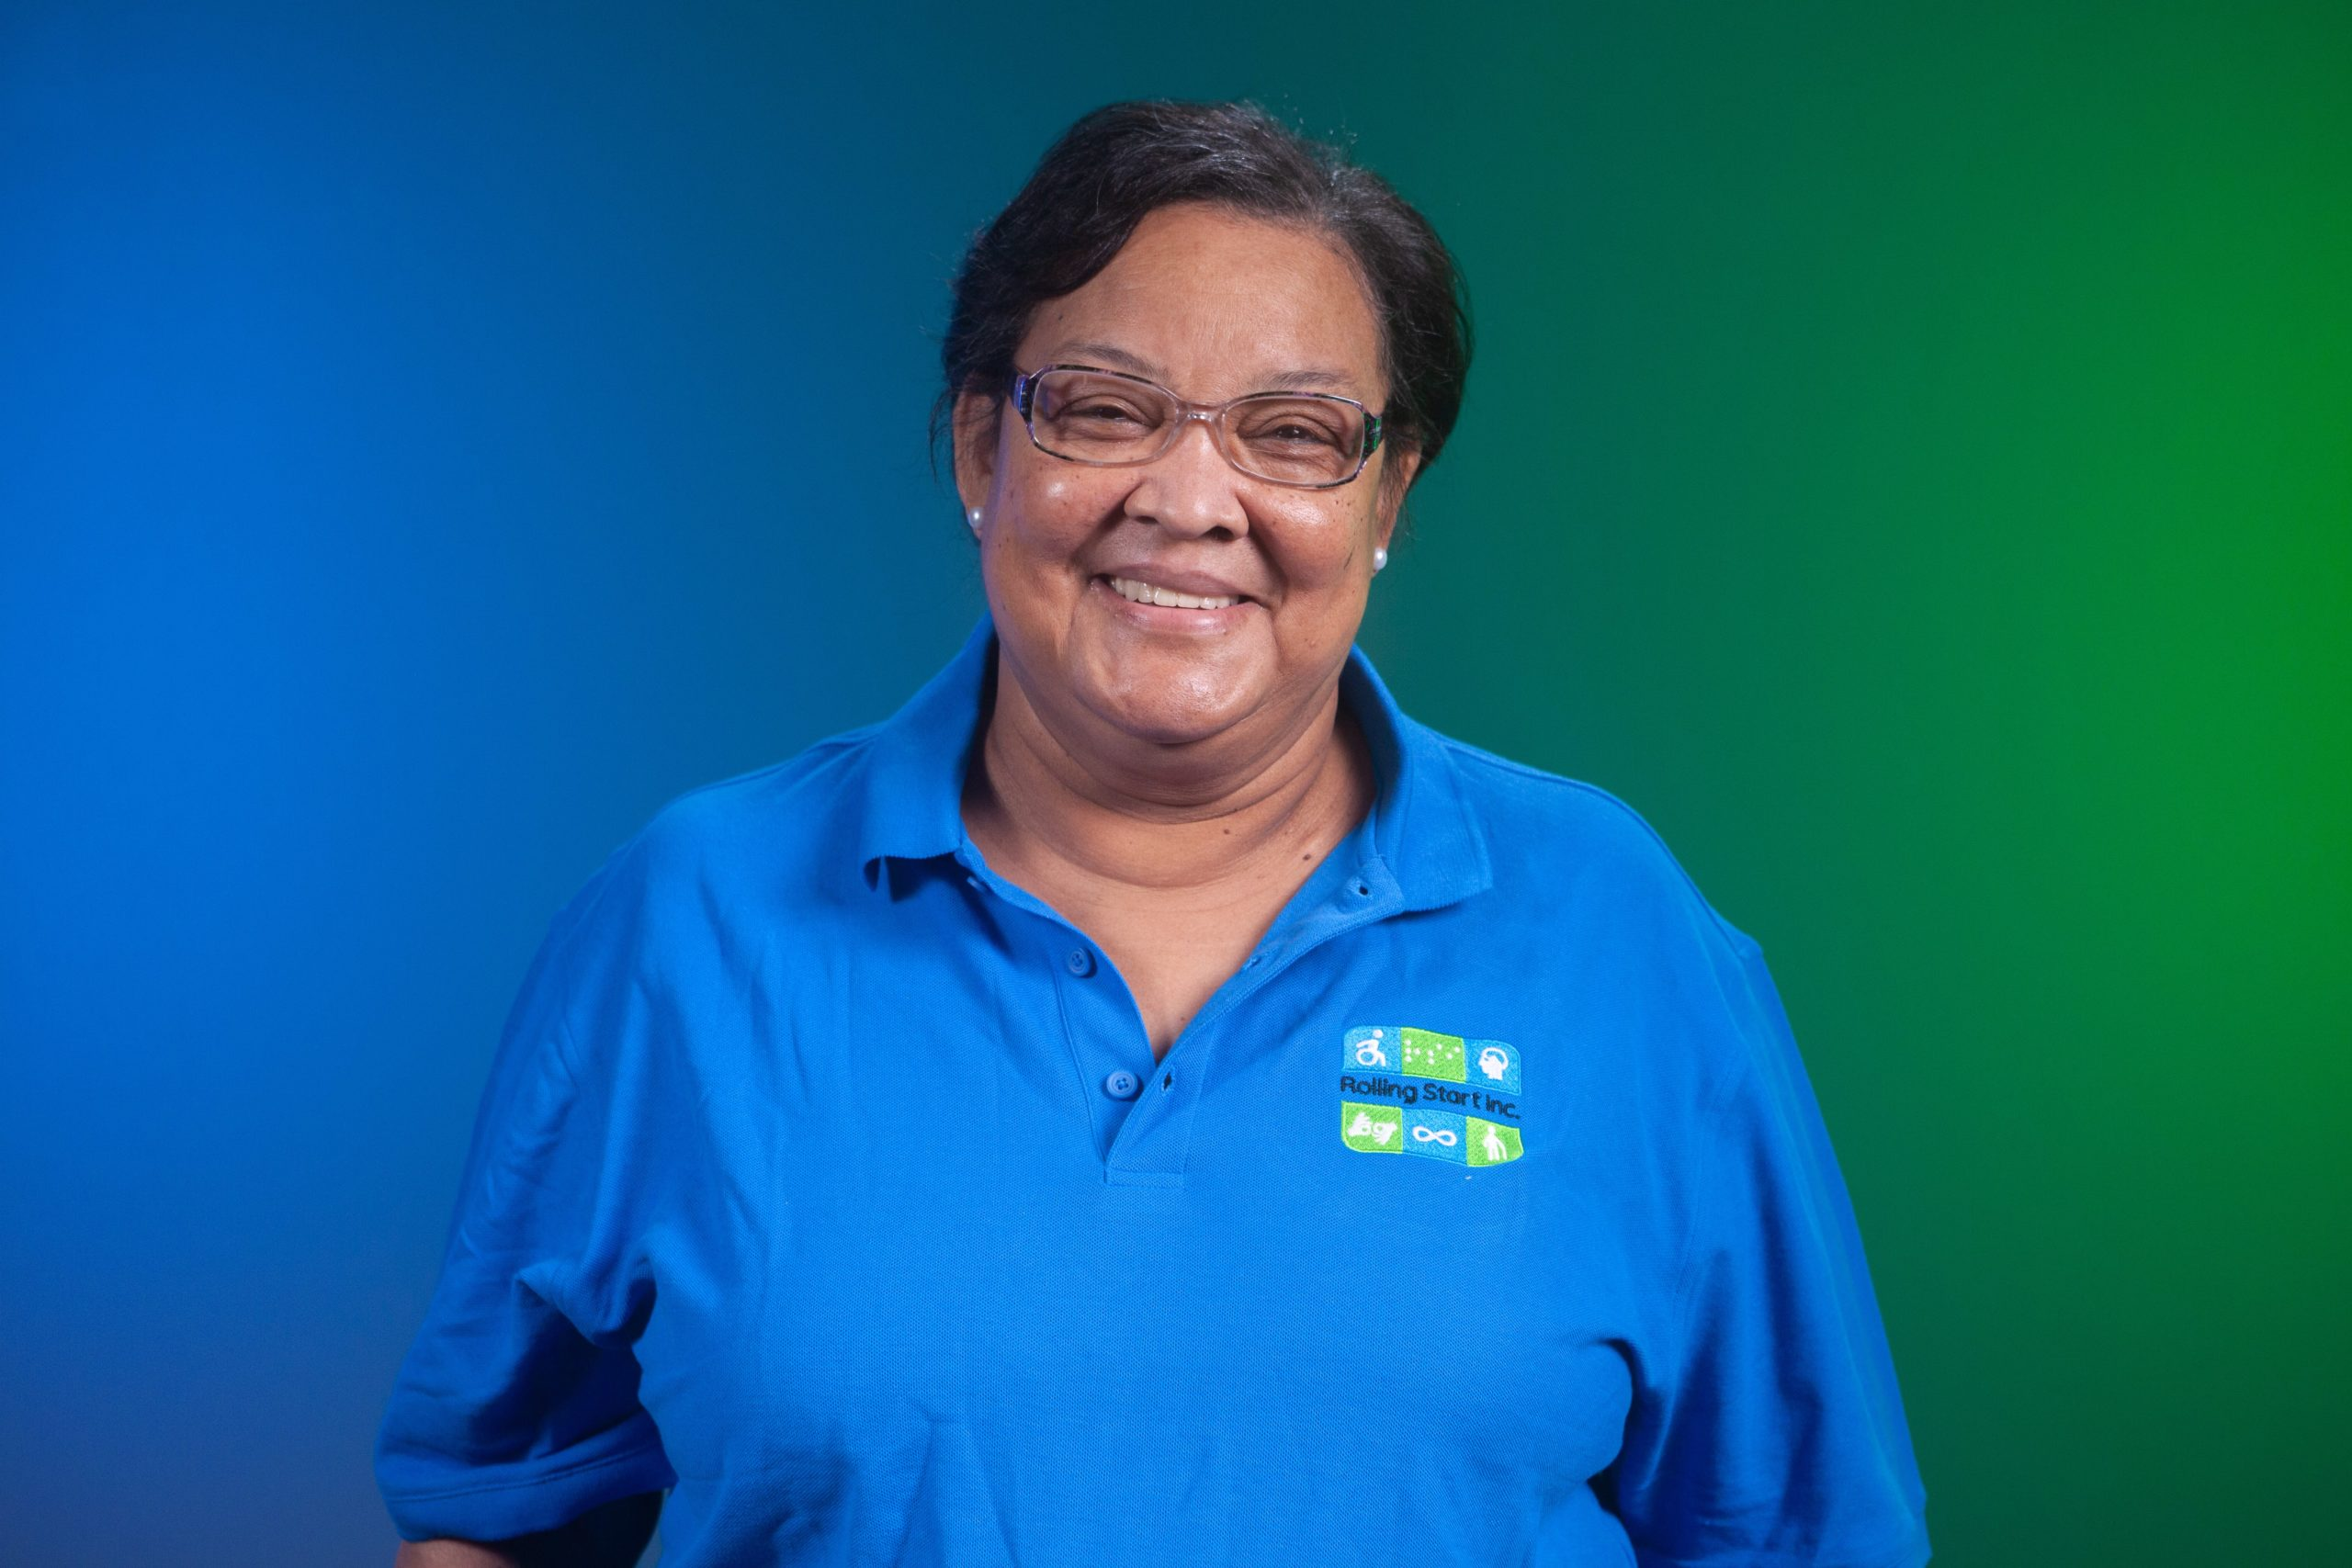 Cathy Cosgrove - Assistive Technology Specialist